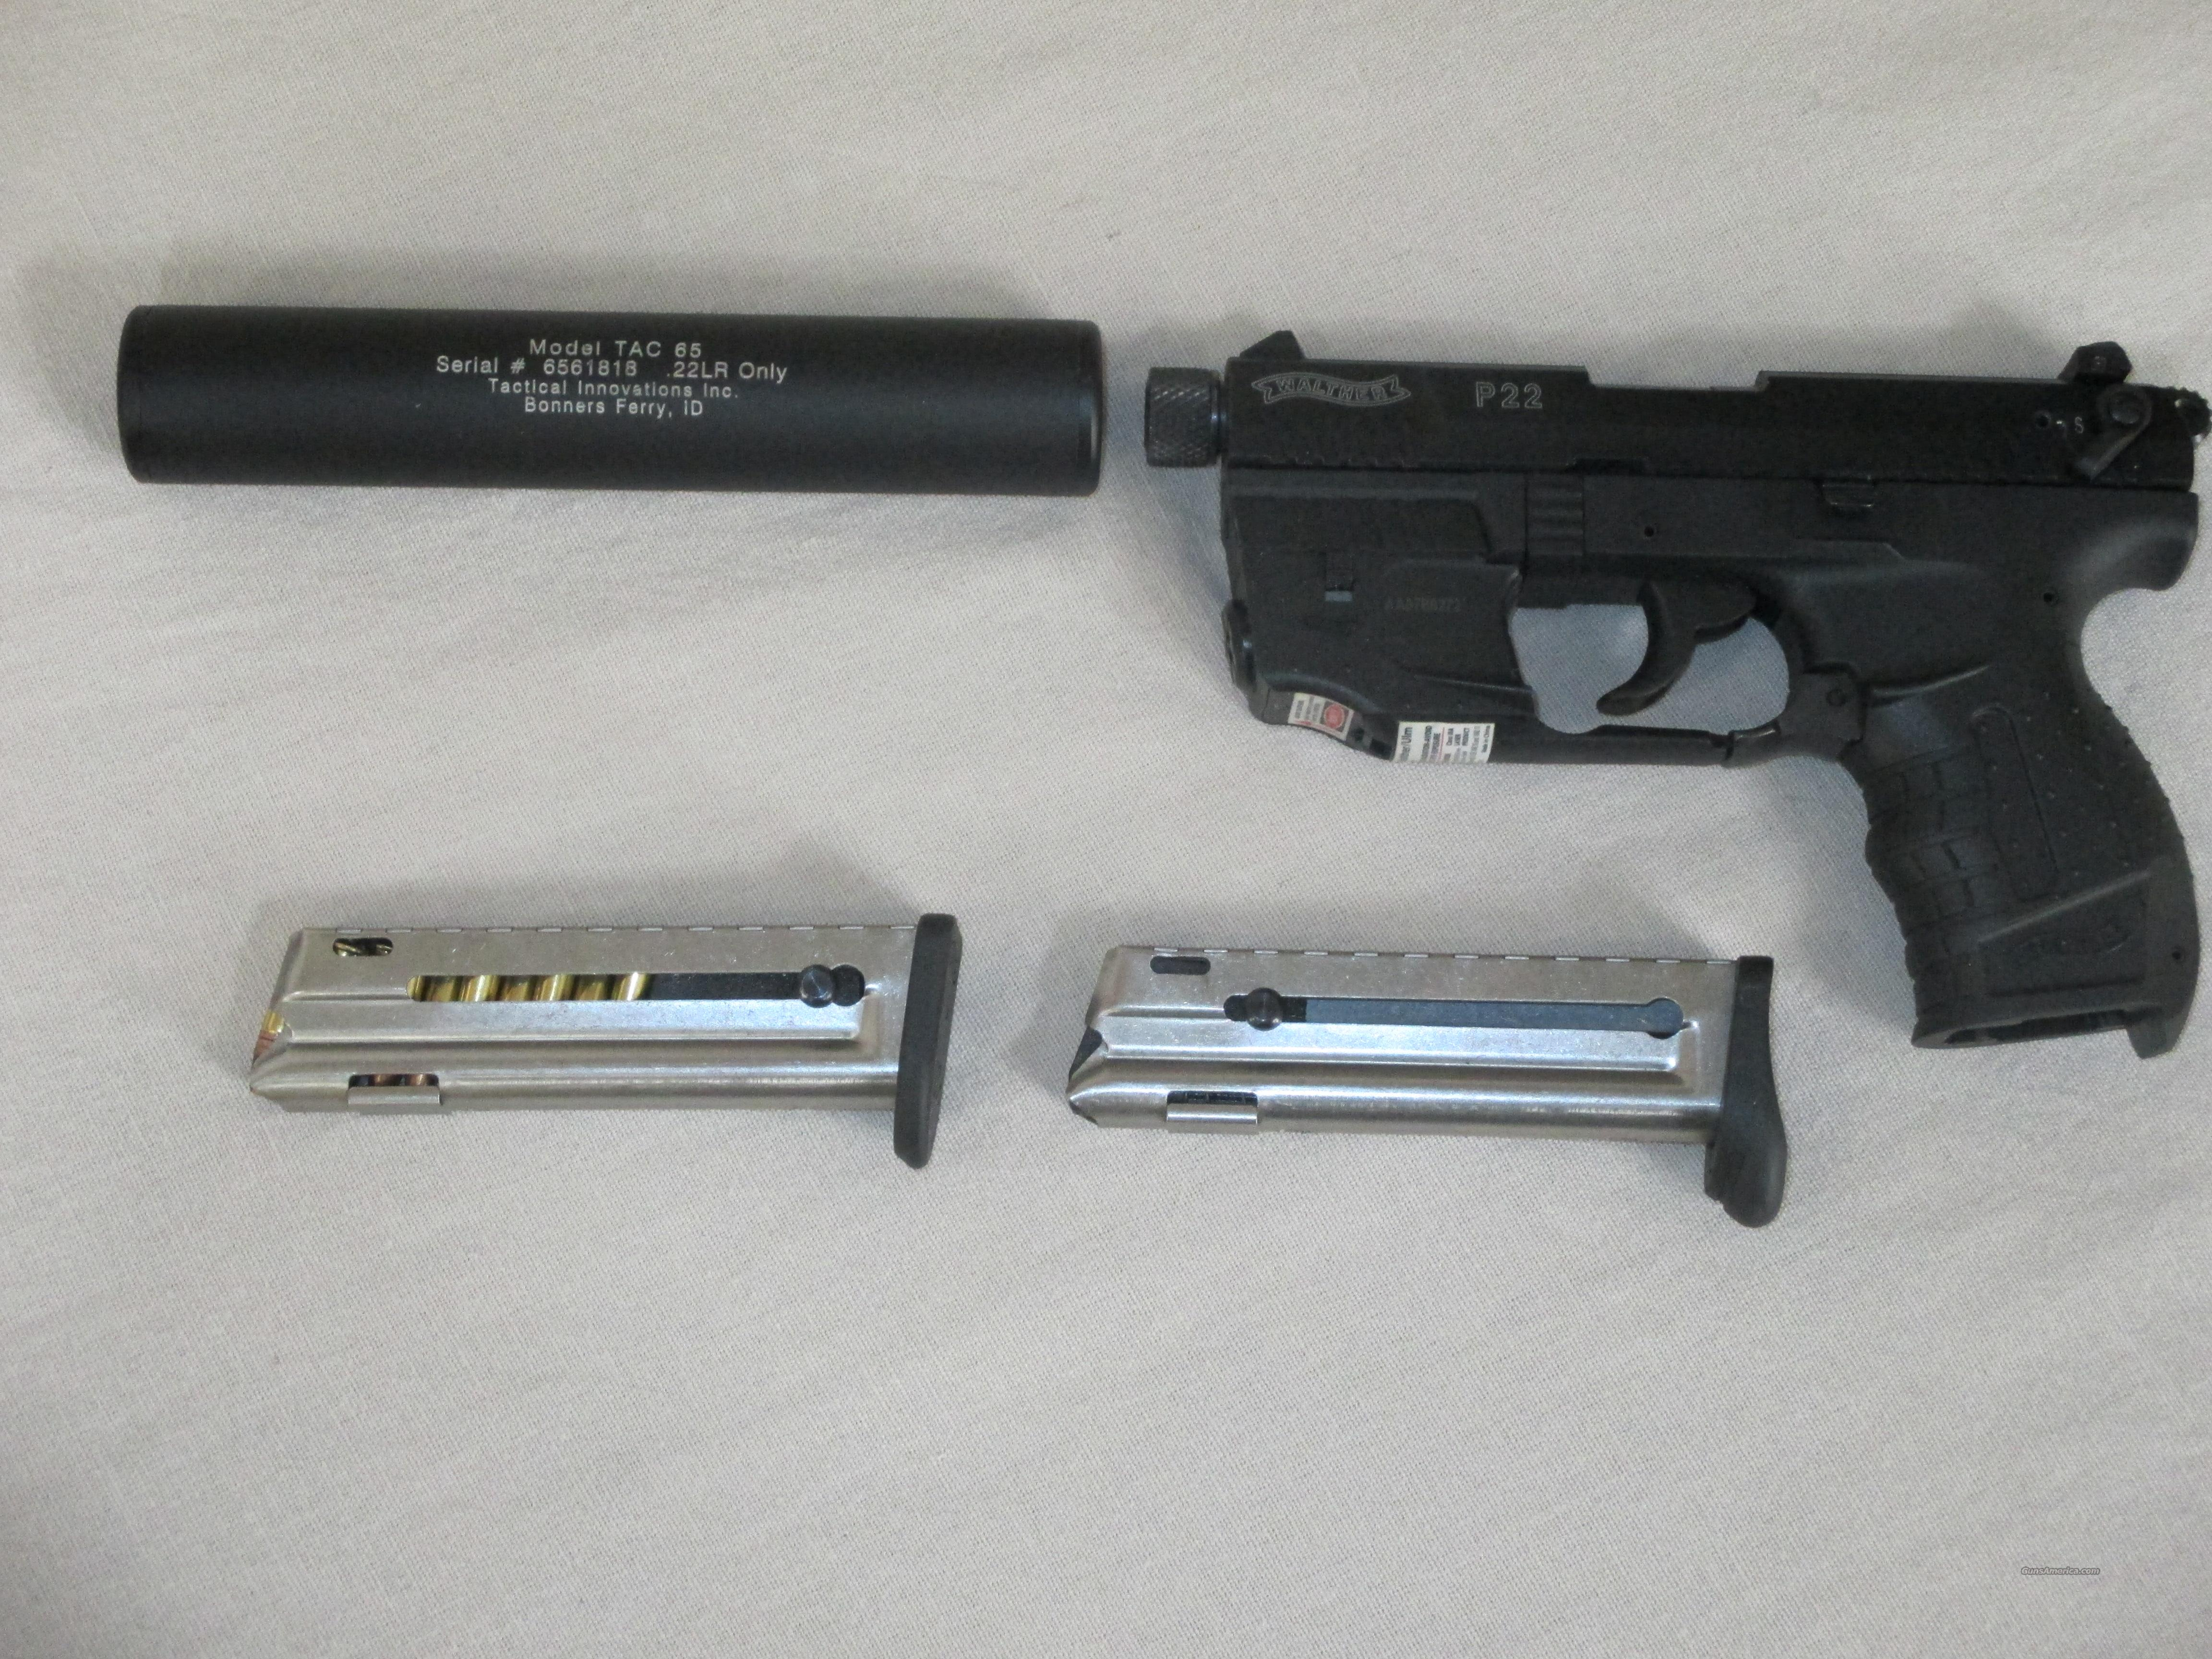 WALTHER P22 WITH LASER & SILENCER